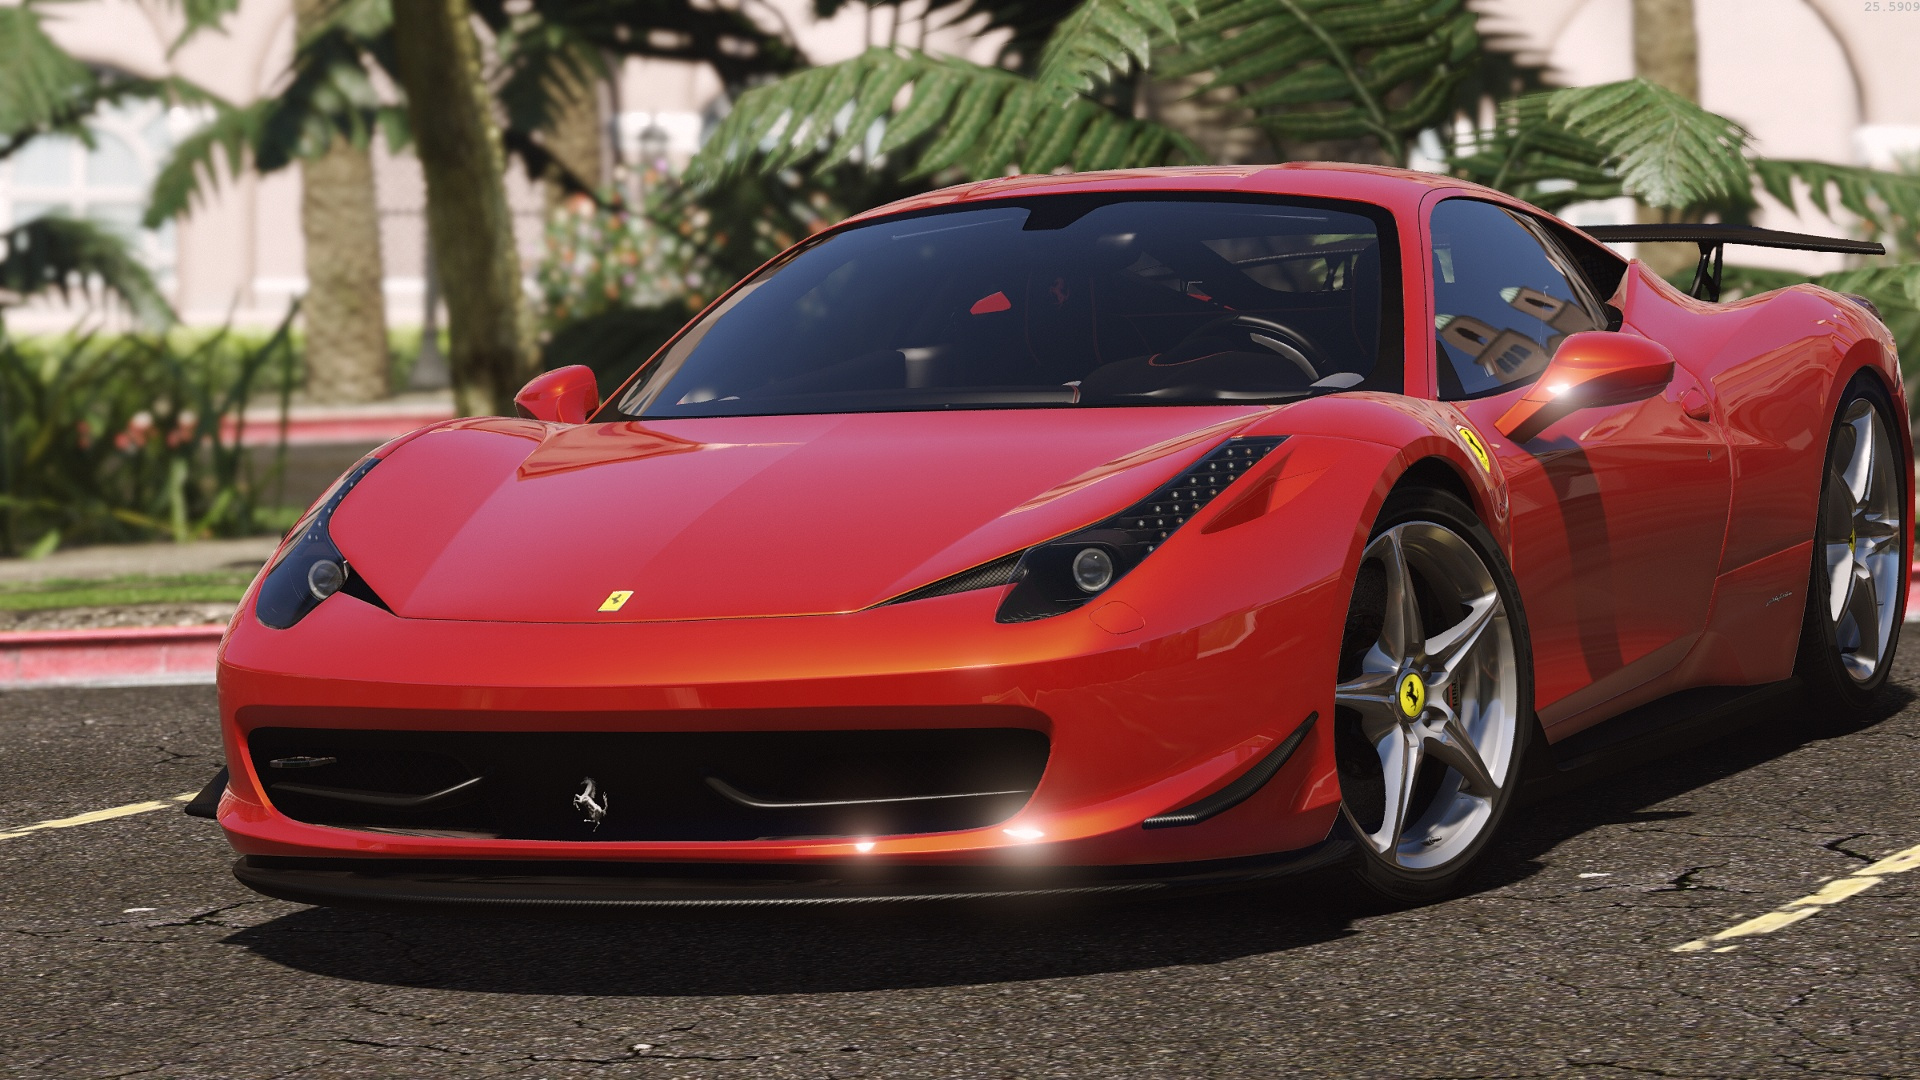 59e6ba gta5 26 11 2016 04 04 41 315 - 2016 Ferrari 458 Replacement